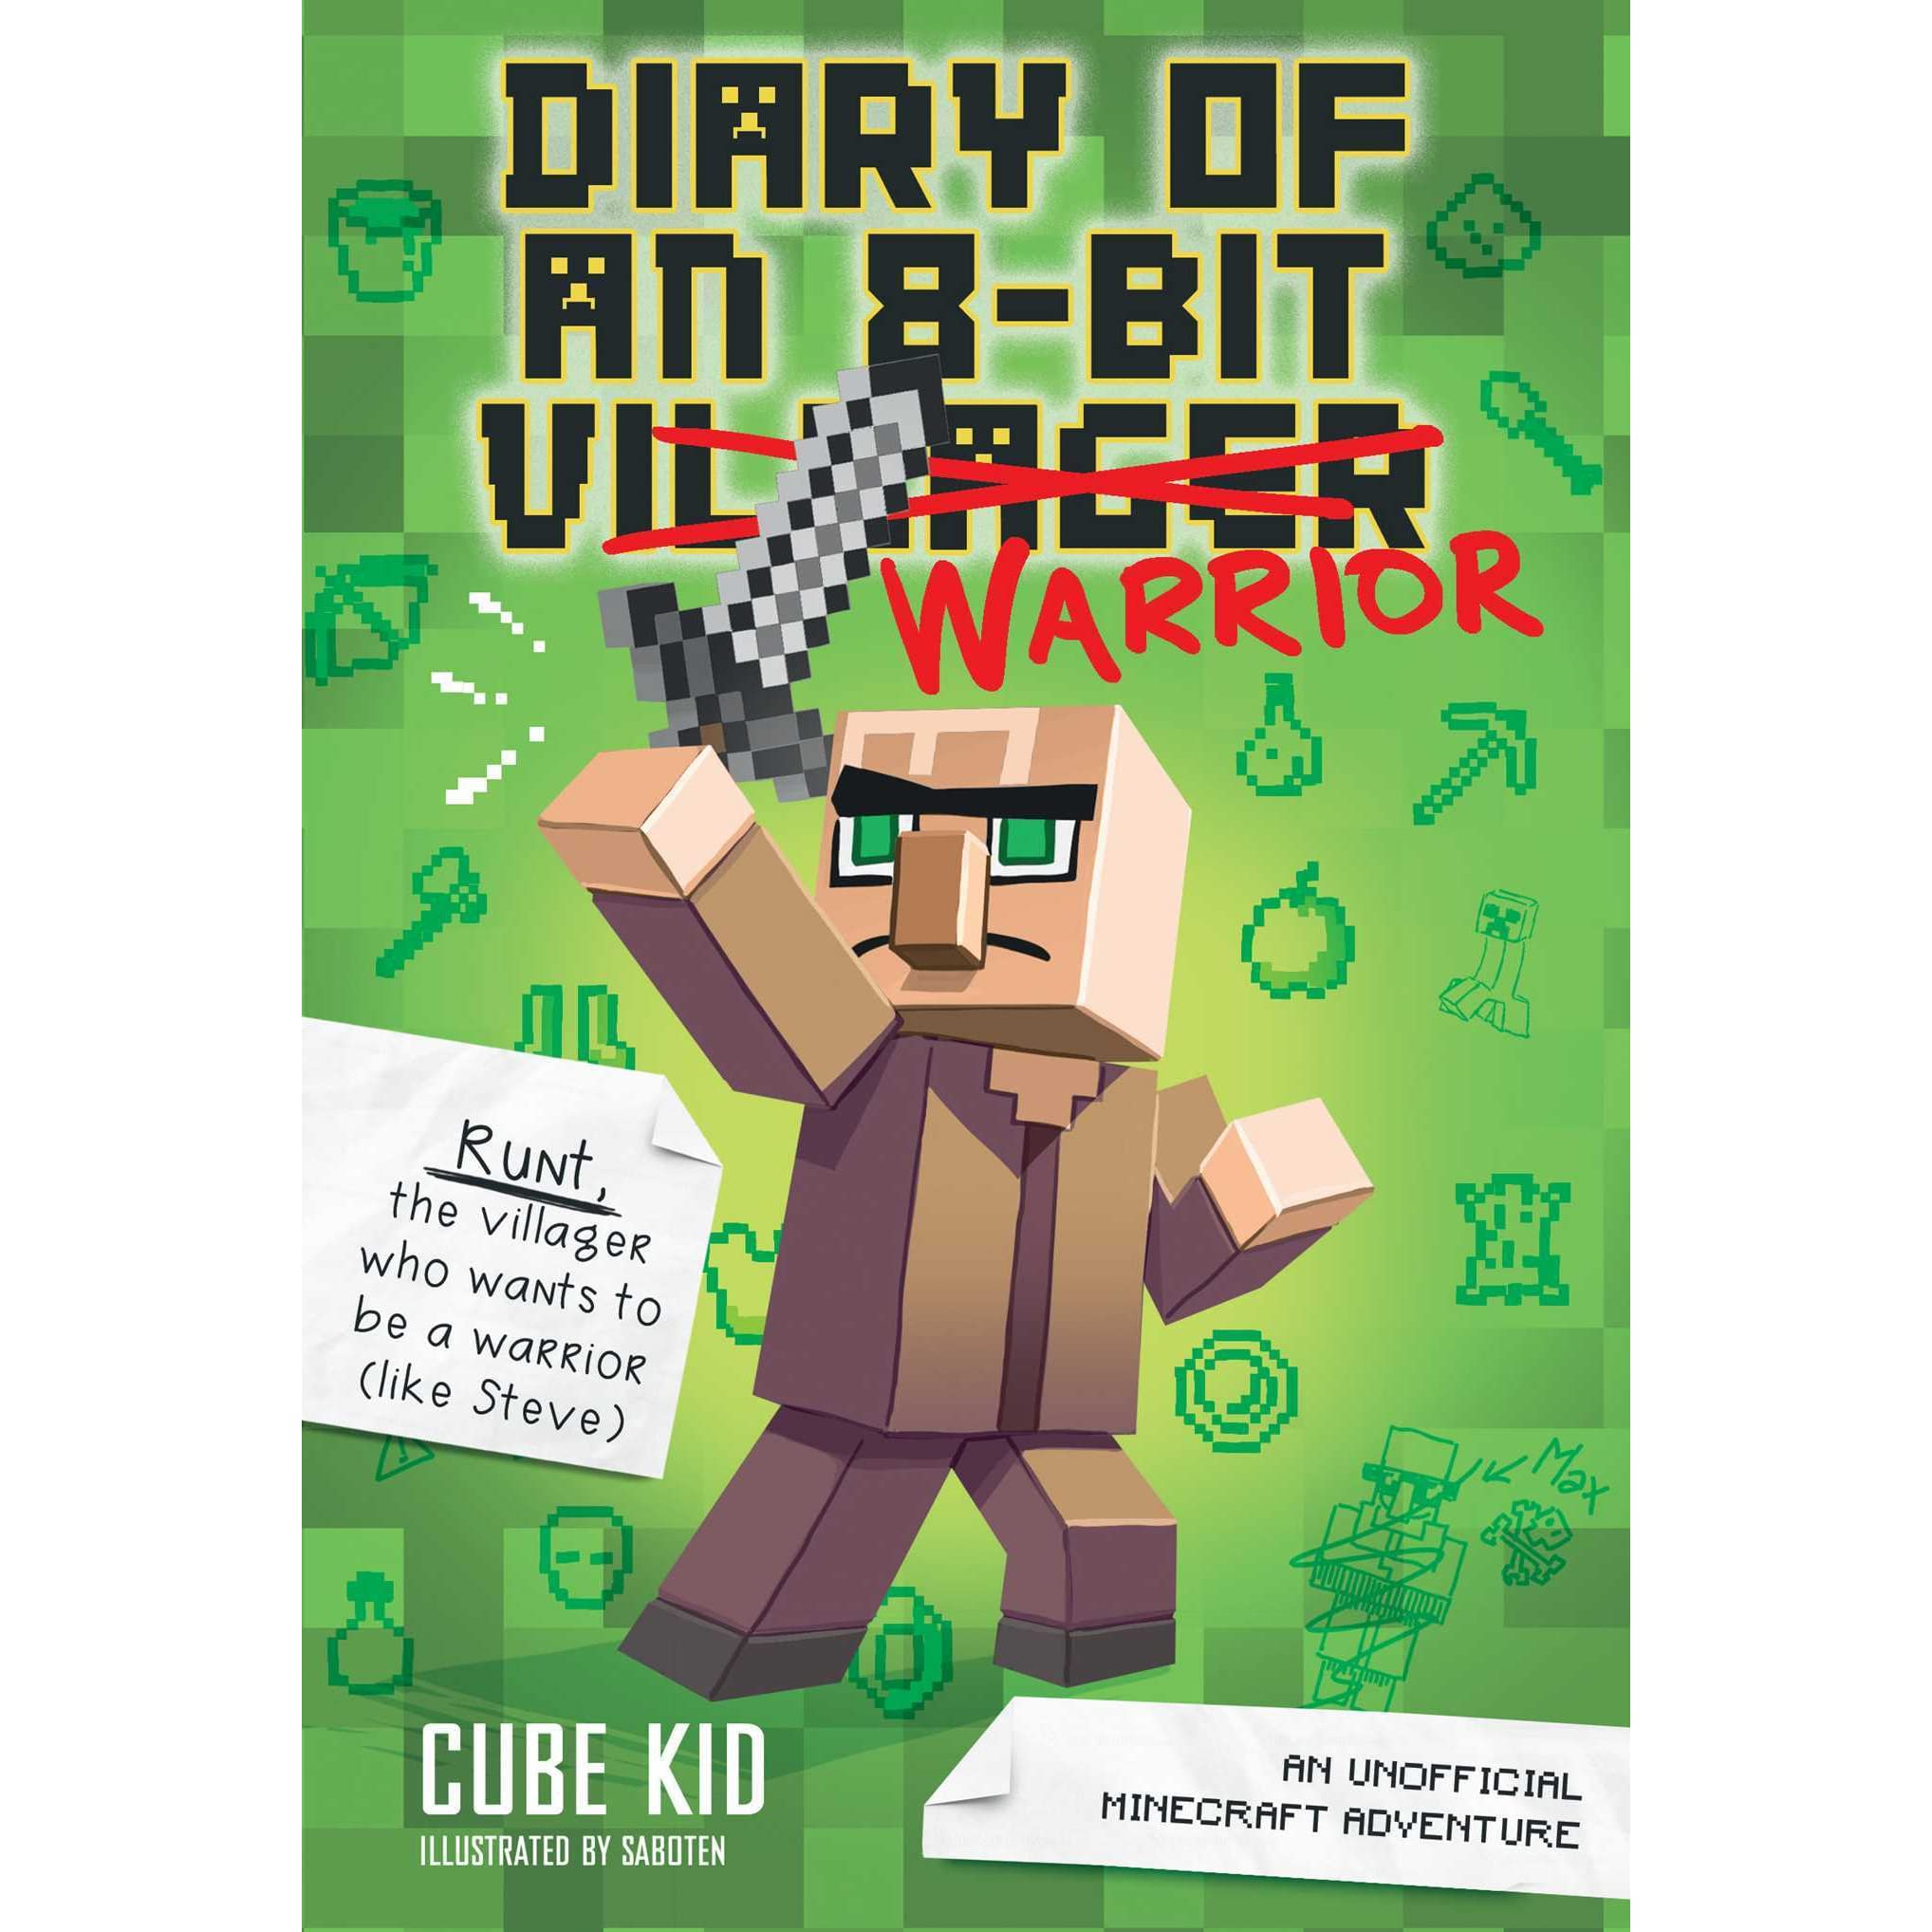 Diary of an 8-Bit Warrior: An Unofficial Minecraft Adventure by Cube Kid